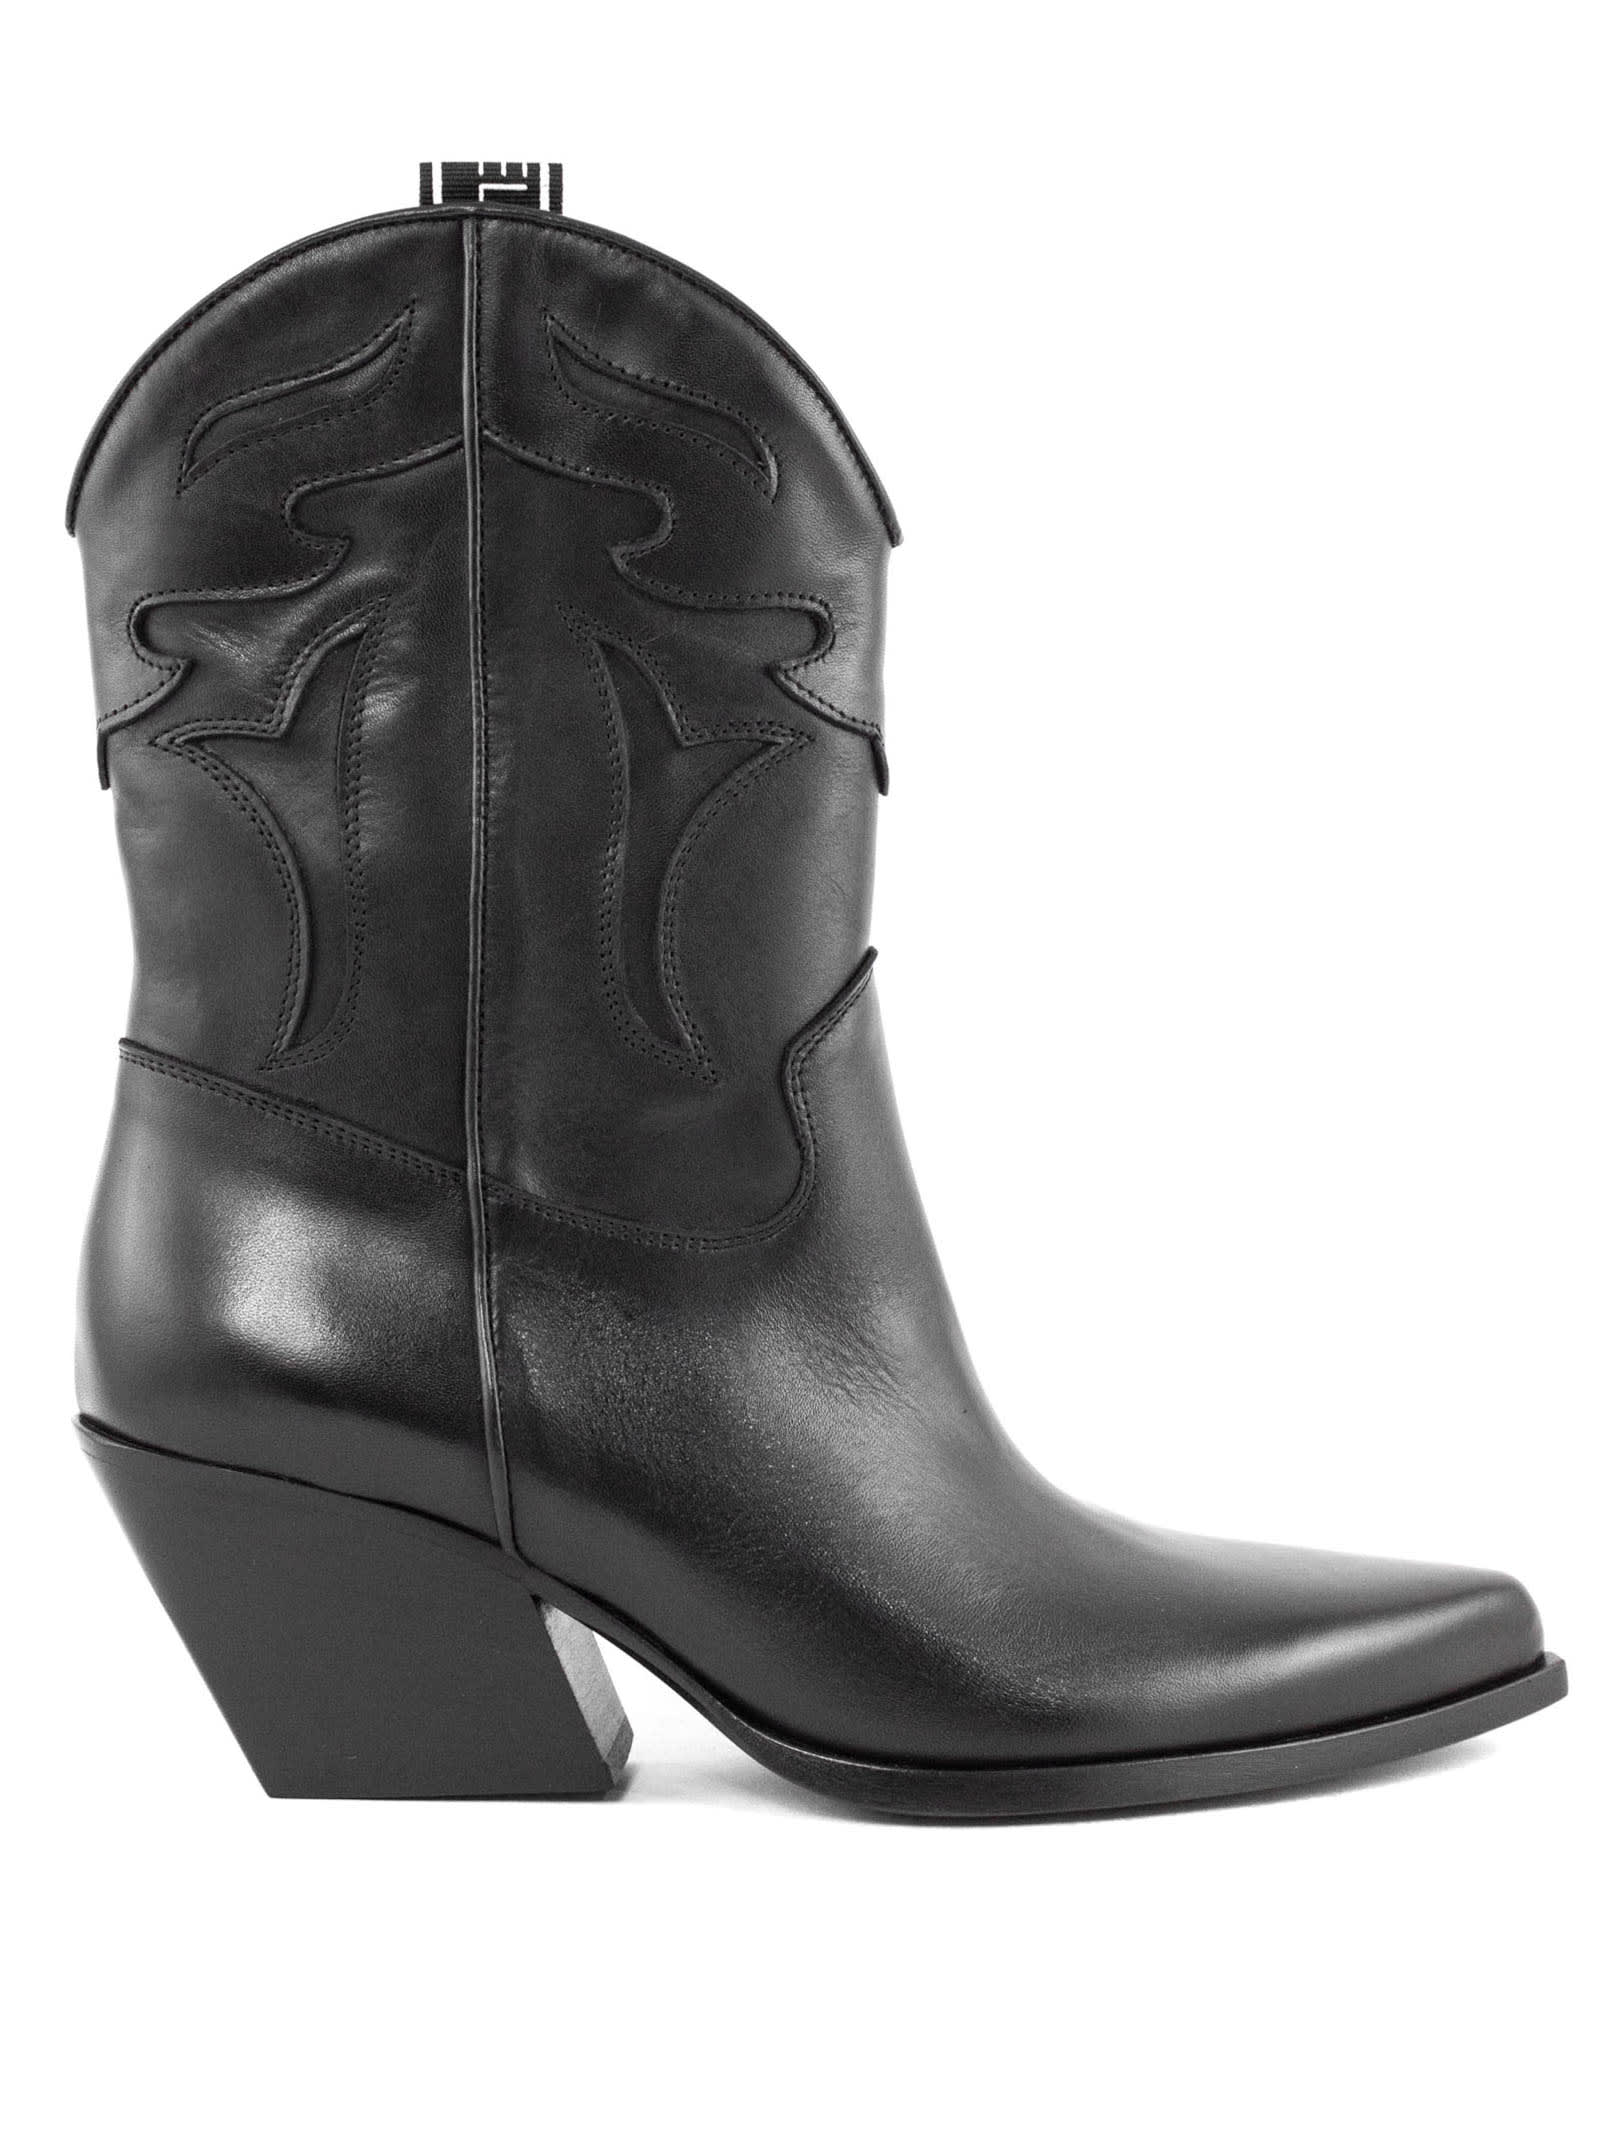 Texan Ankle Boot In Black Leather